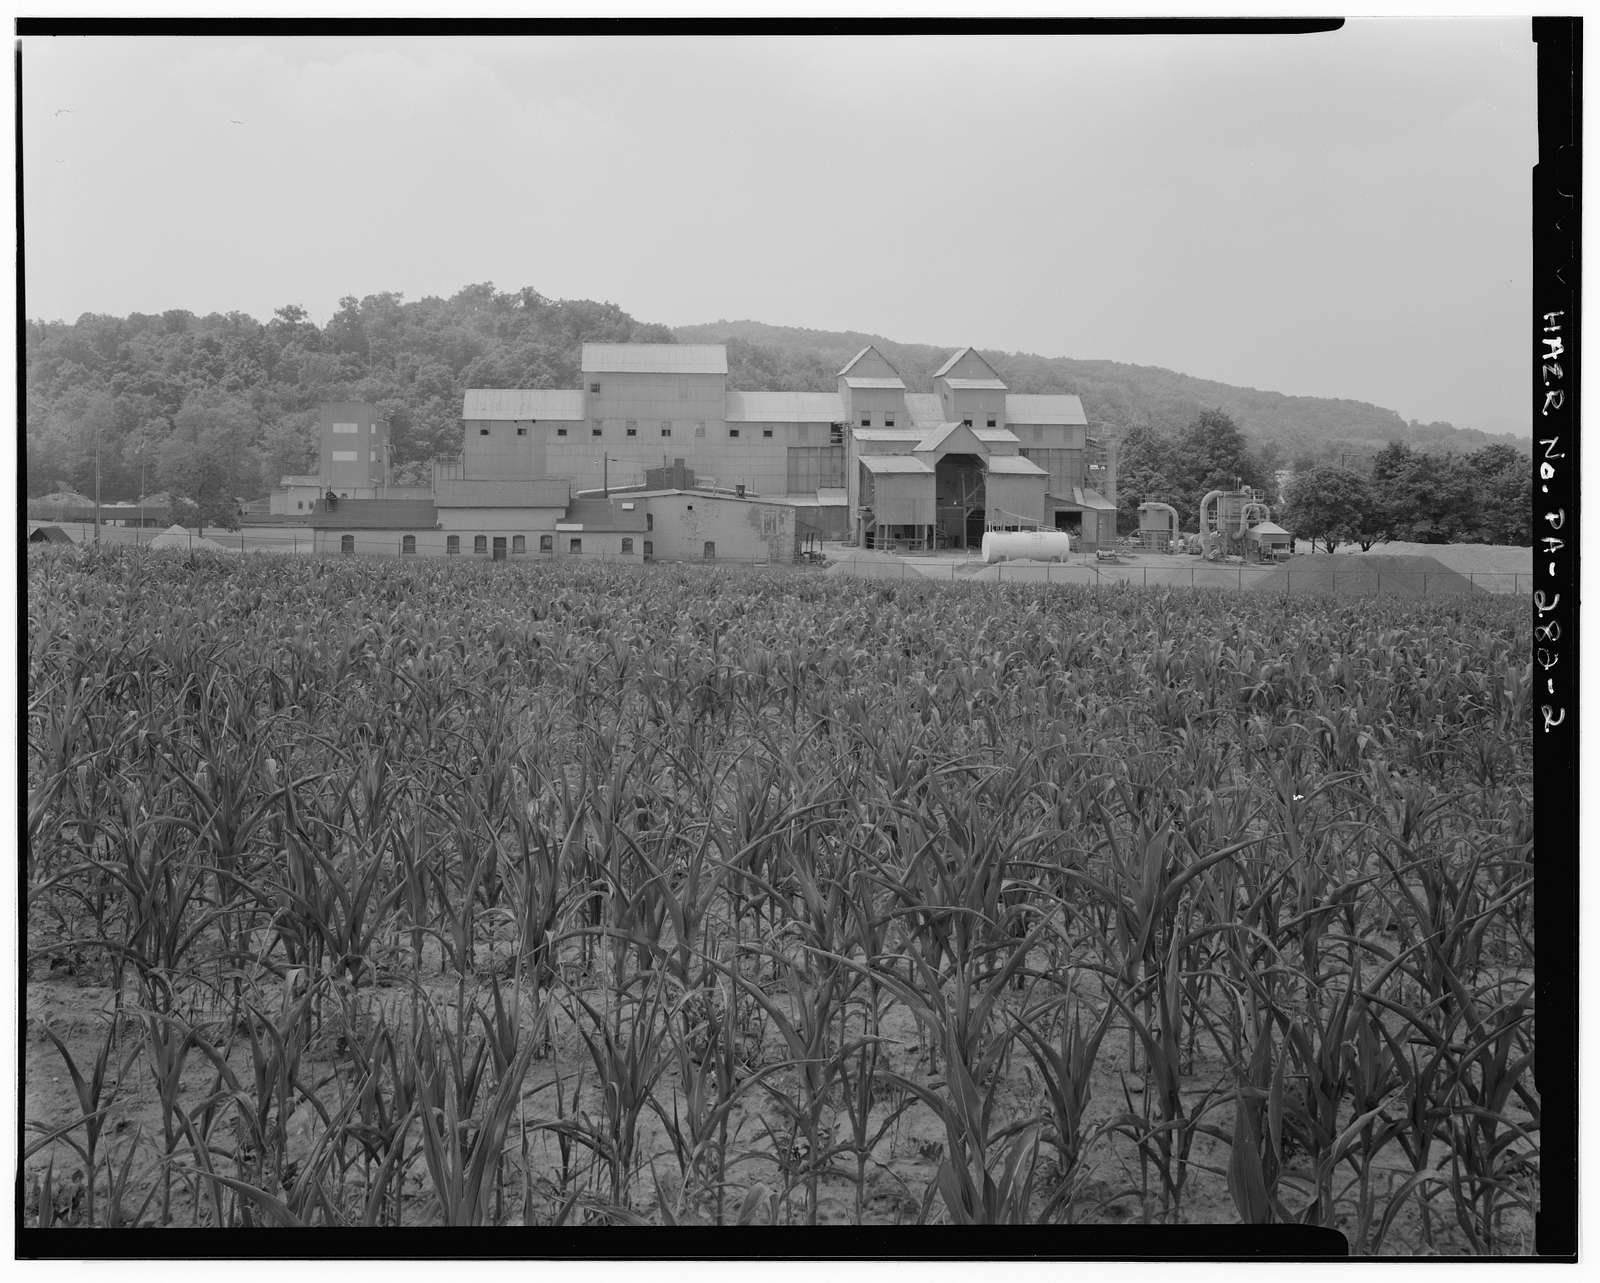 General Refractories Company Plant, West side of old Route 220, Sproul, Blair County, PA